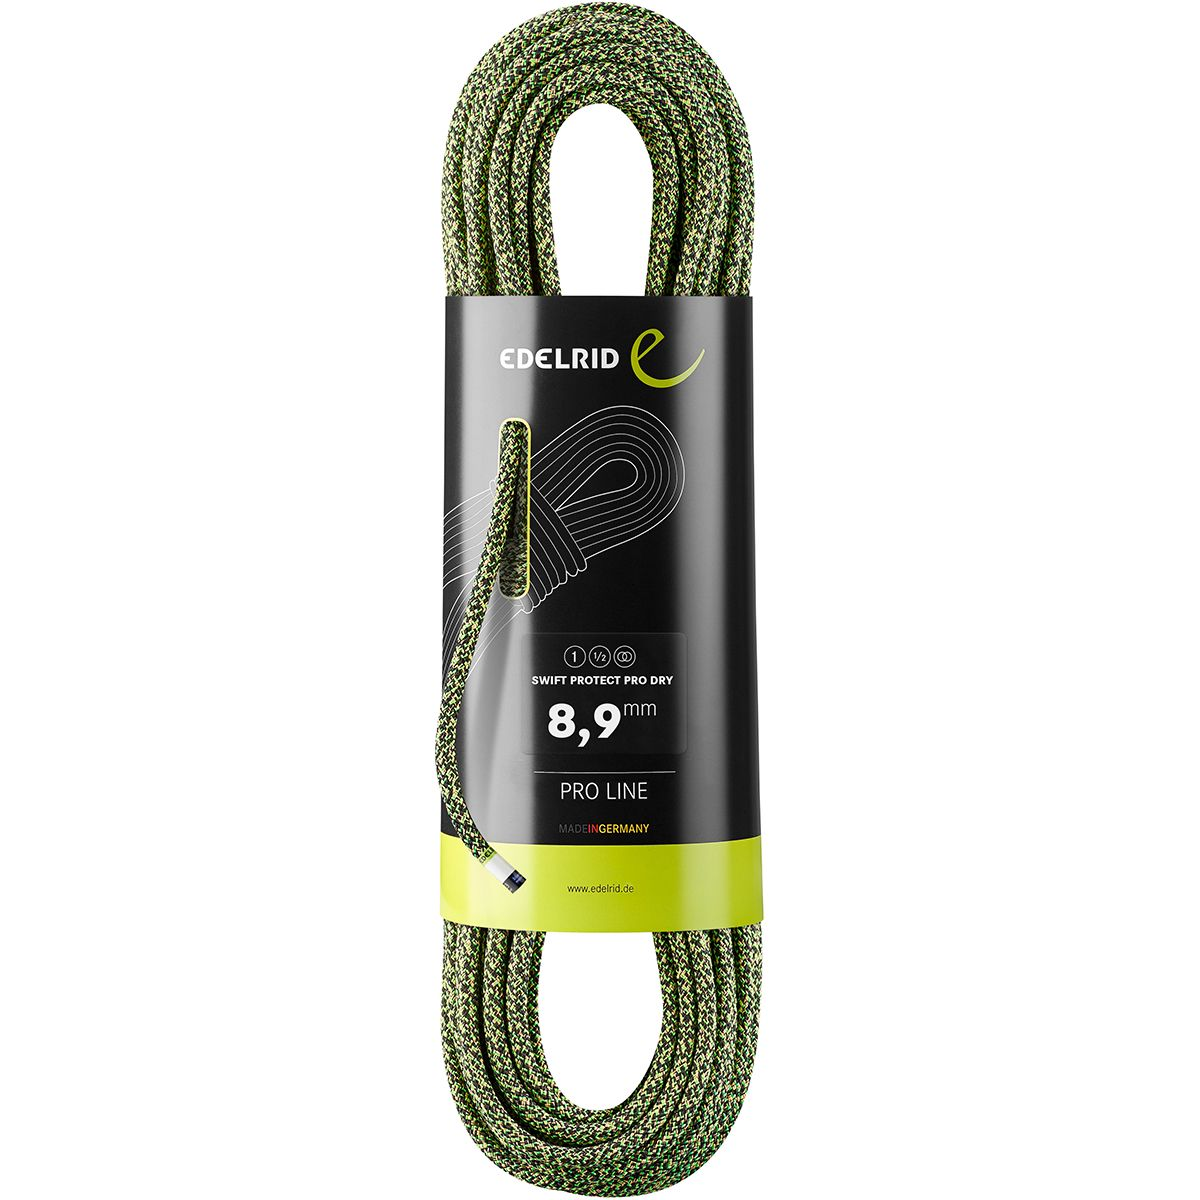 Edelrid Swift Protect Pro Dry 8.9mm x 70m